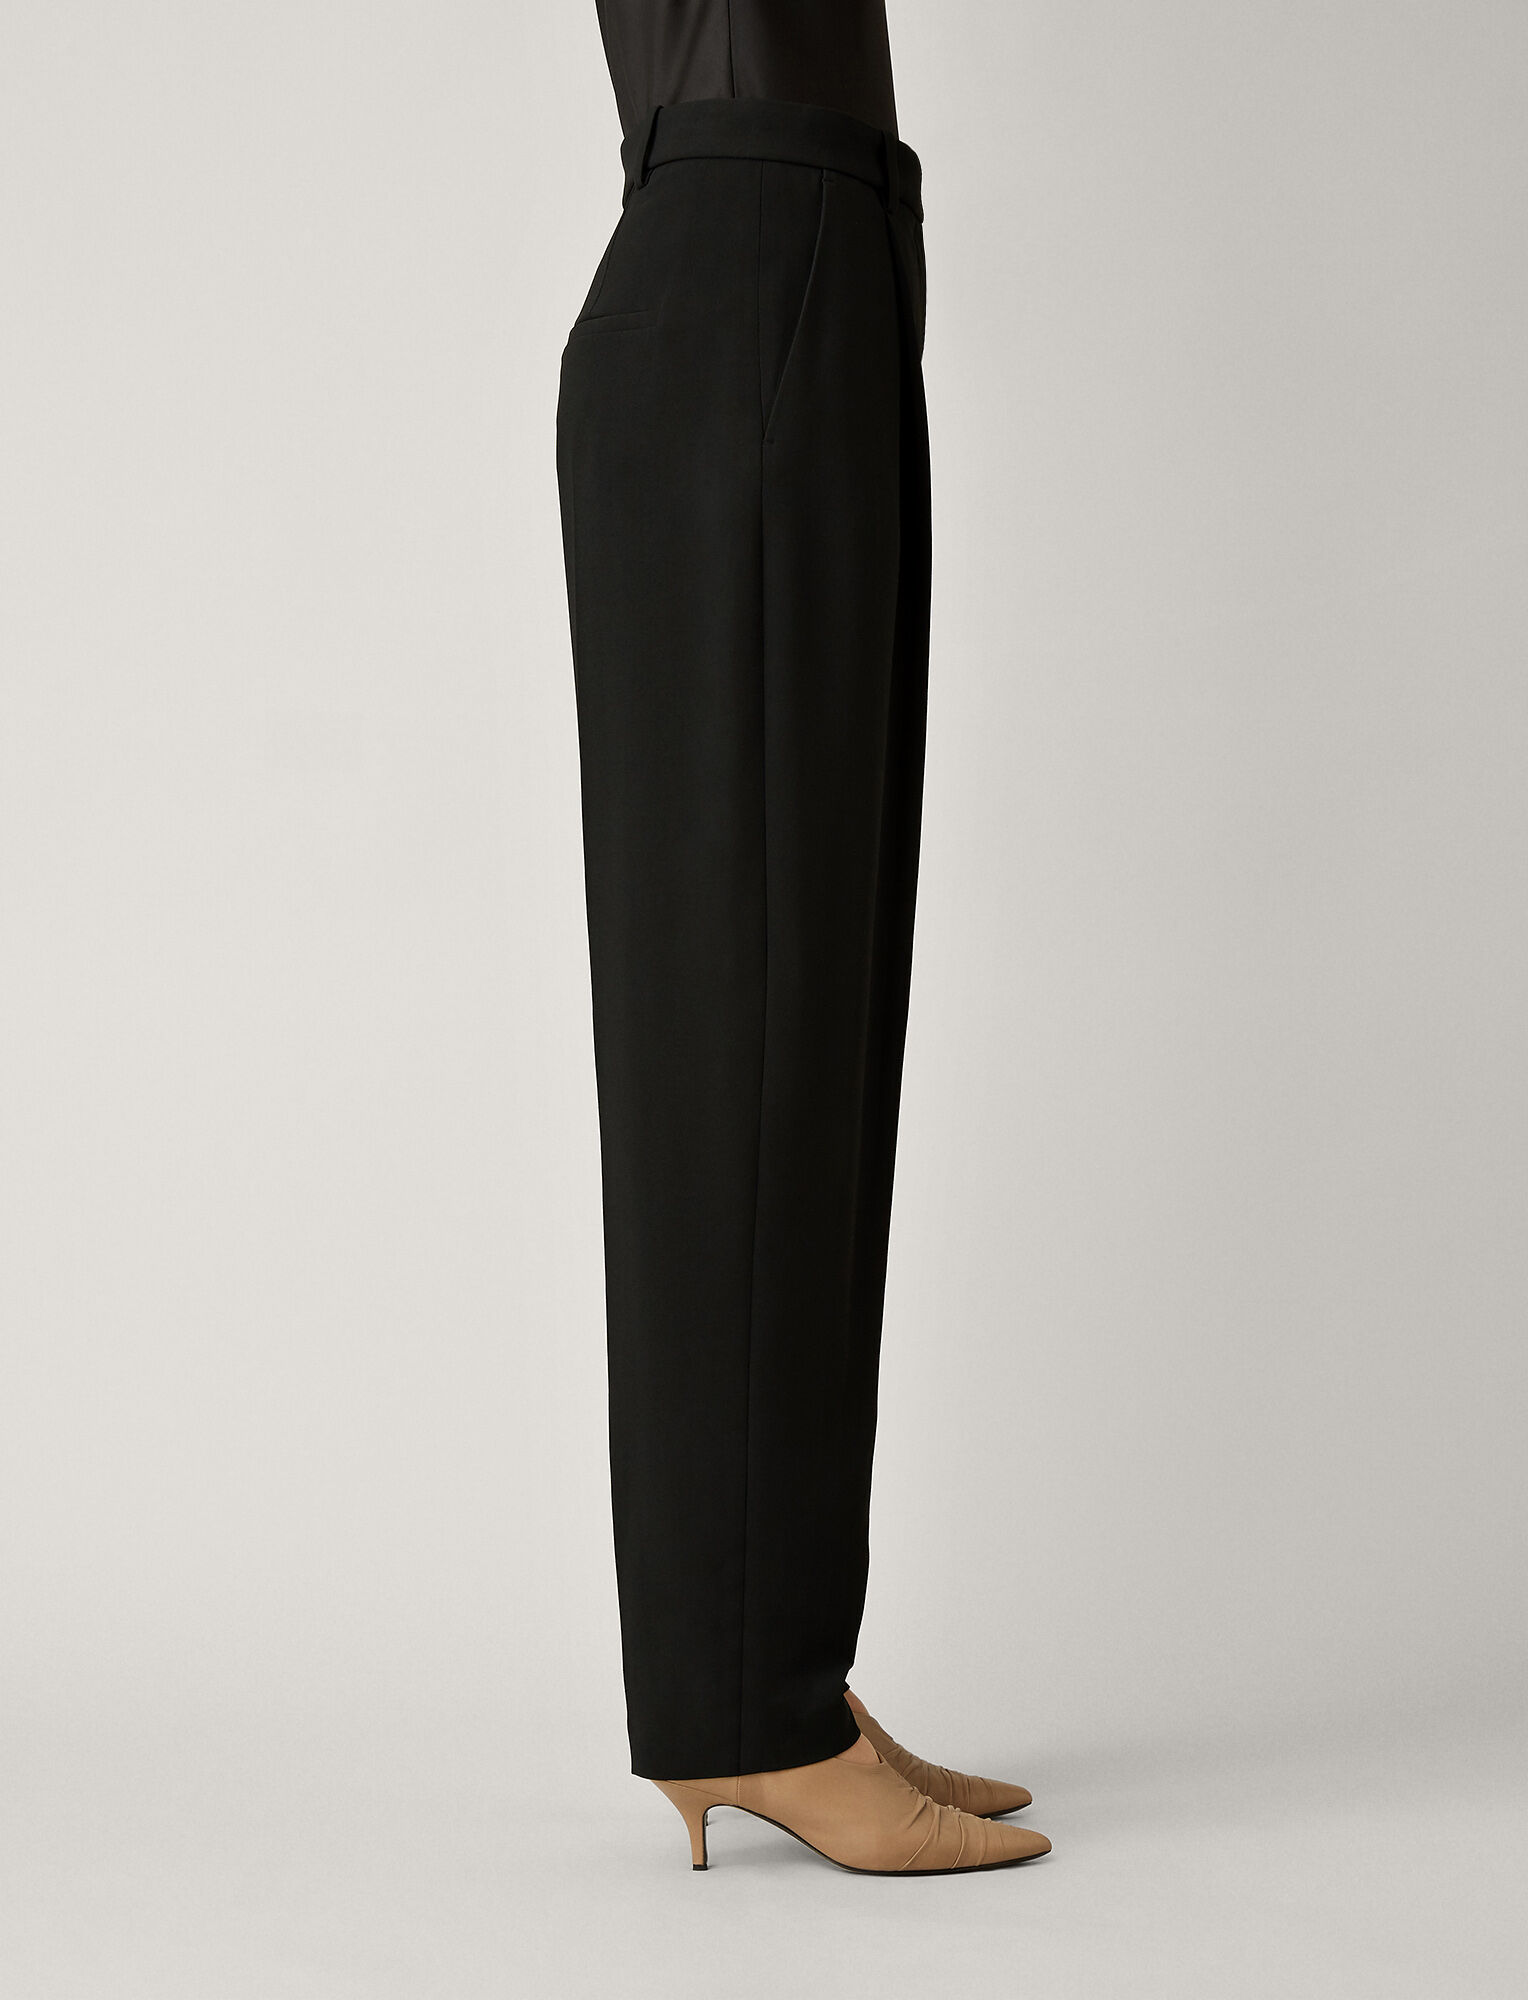 Joseph, Arbala Stretch Acetate Viscose Trousers, in BLACK